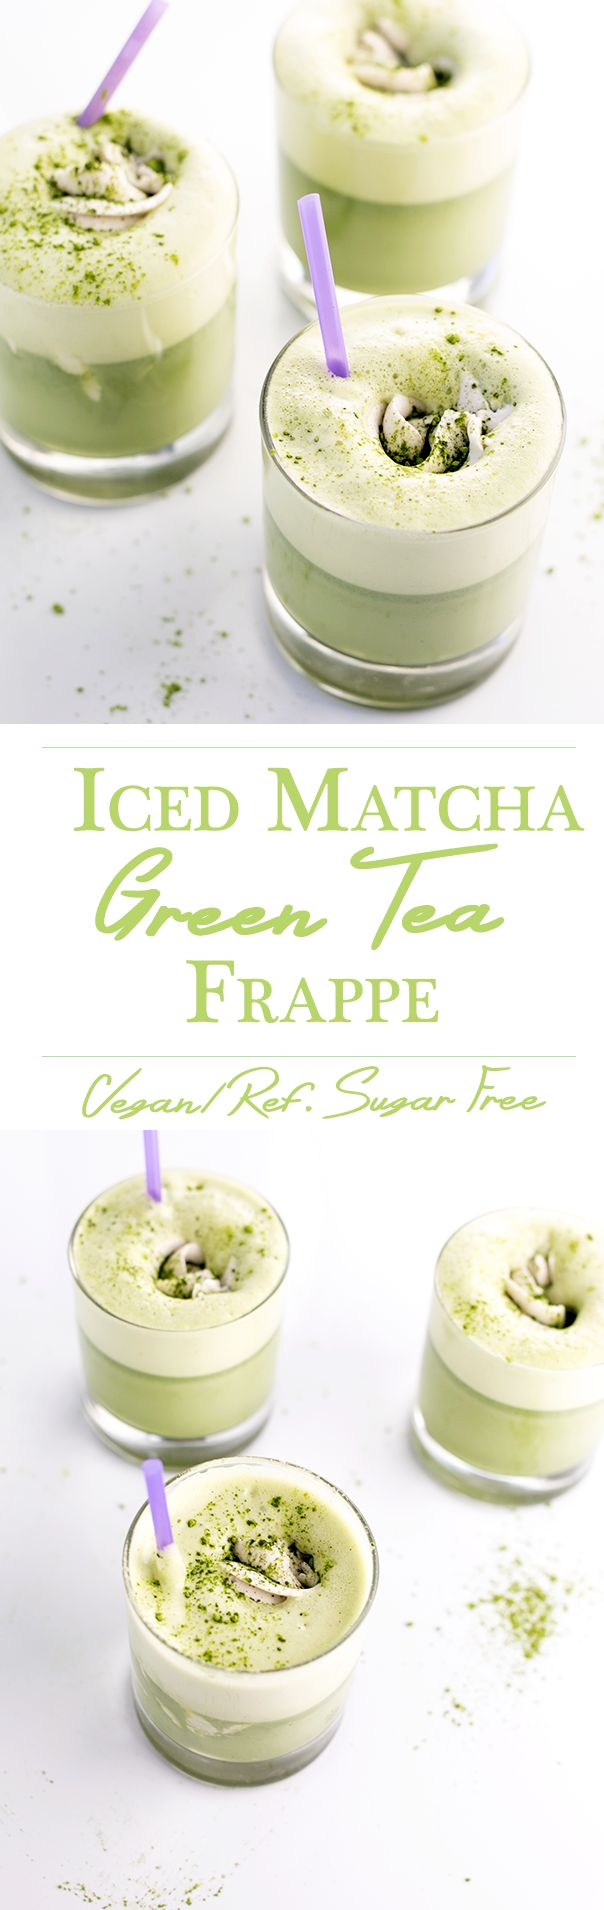 Iced Matcha Green Tea Frappe with Coconut Whip